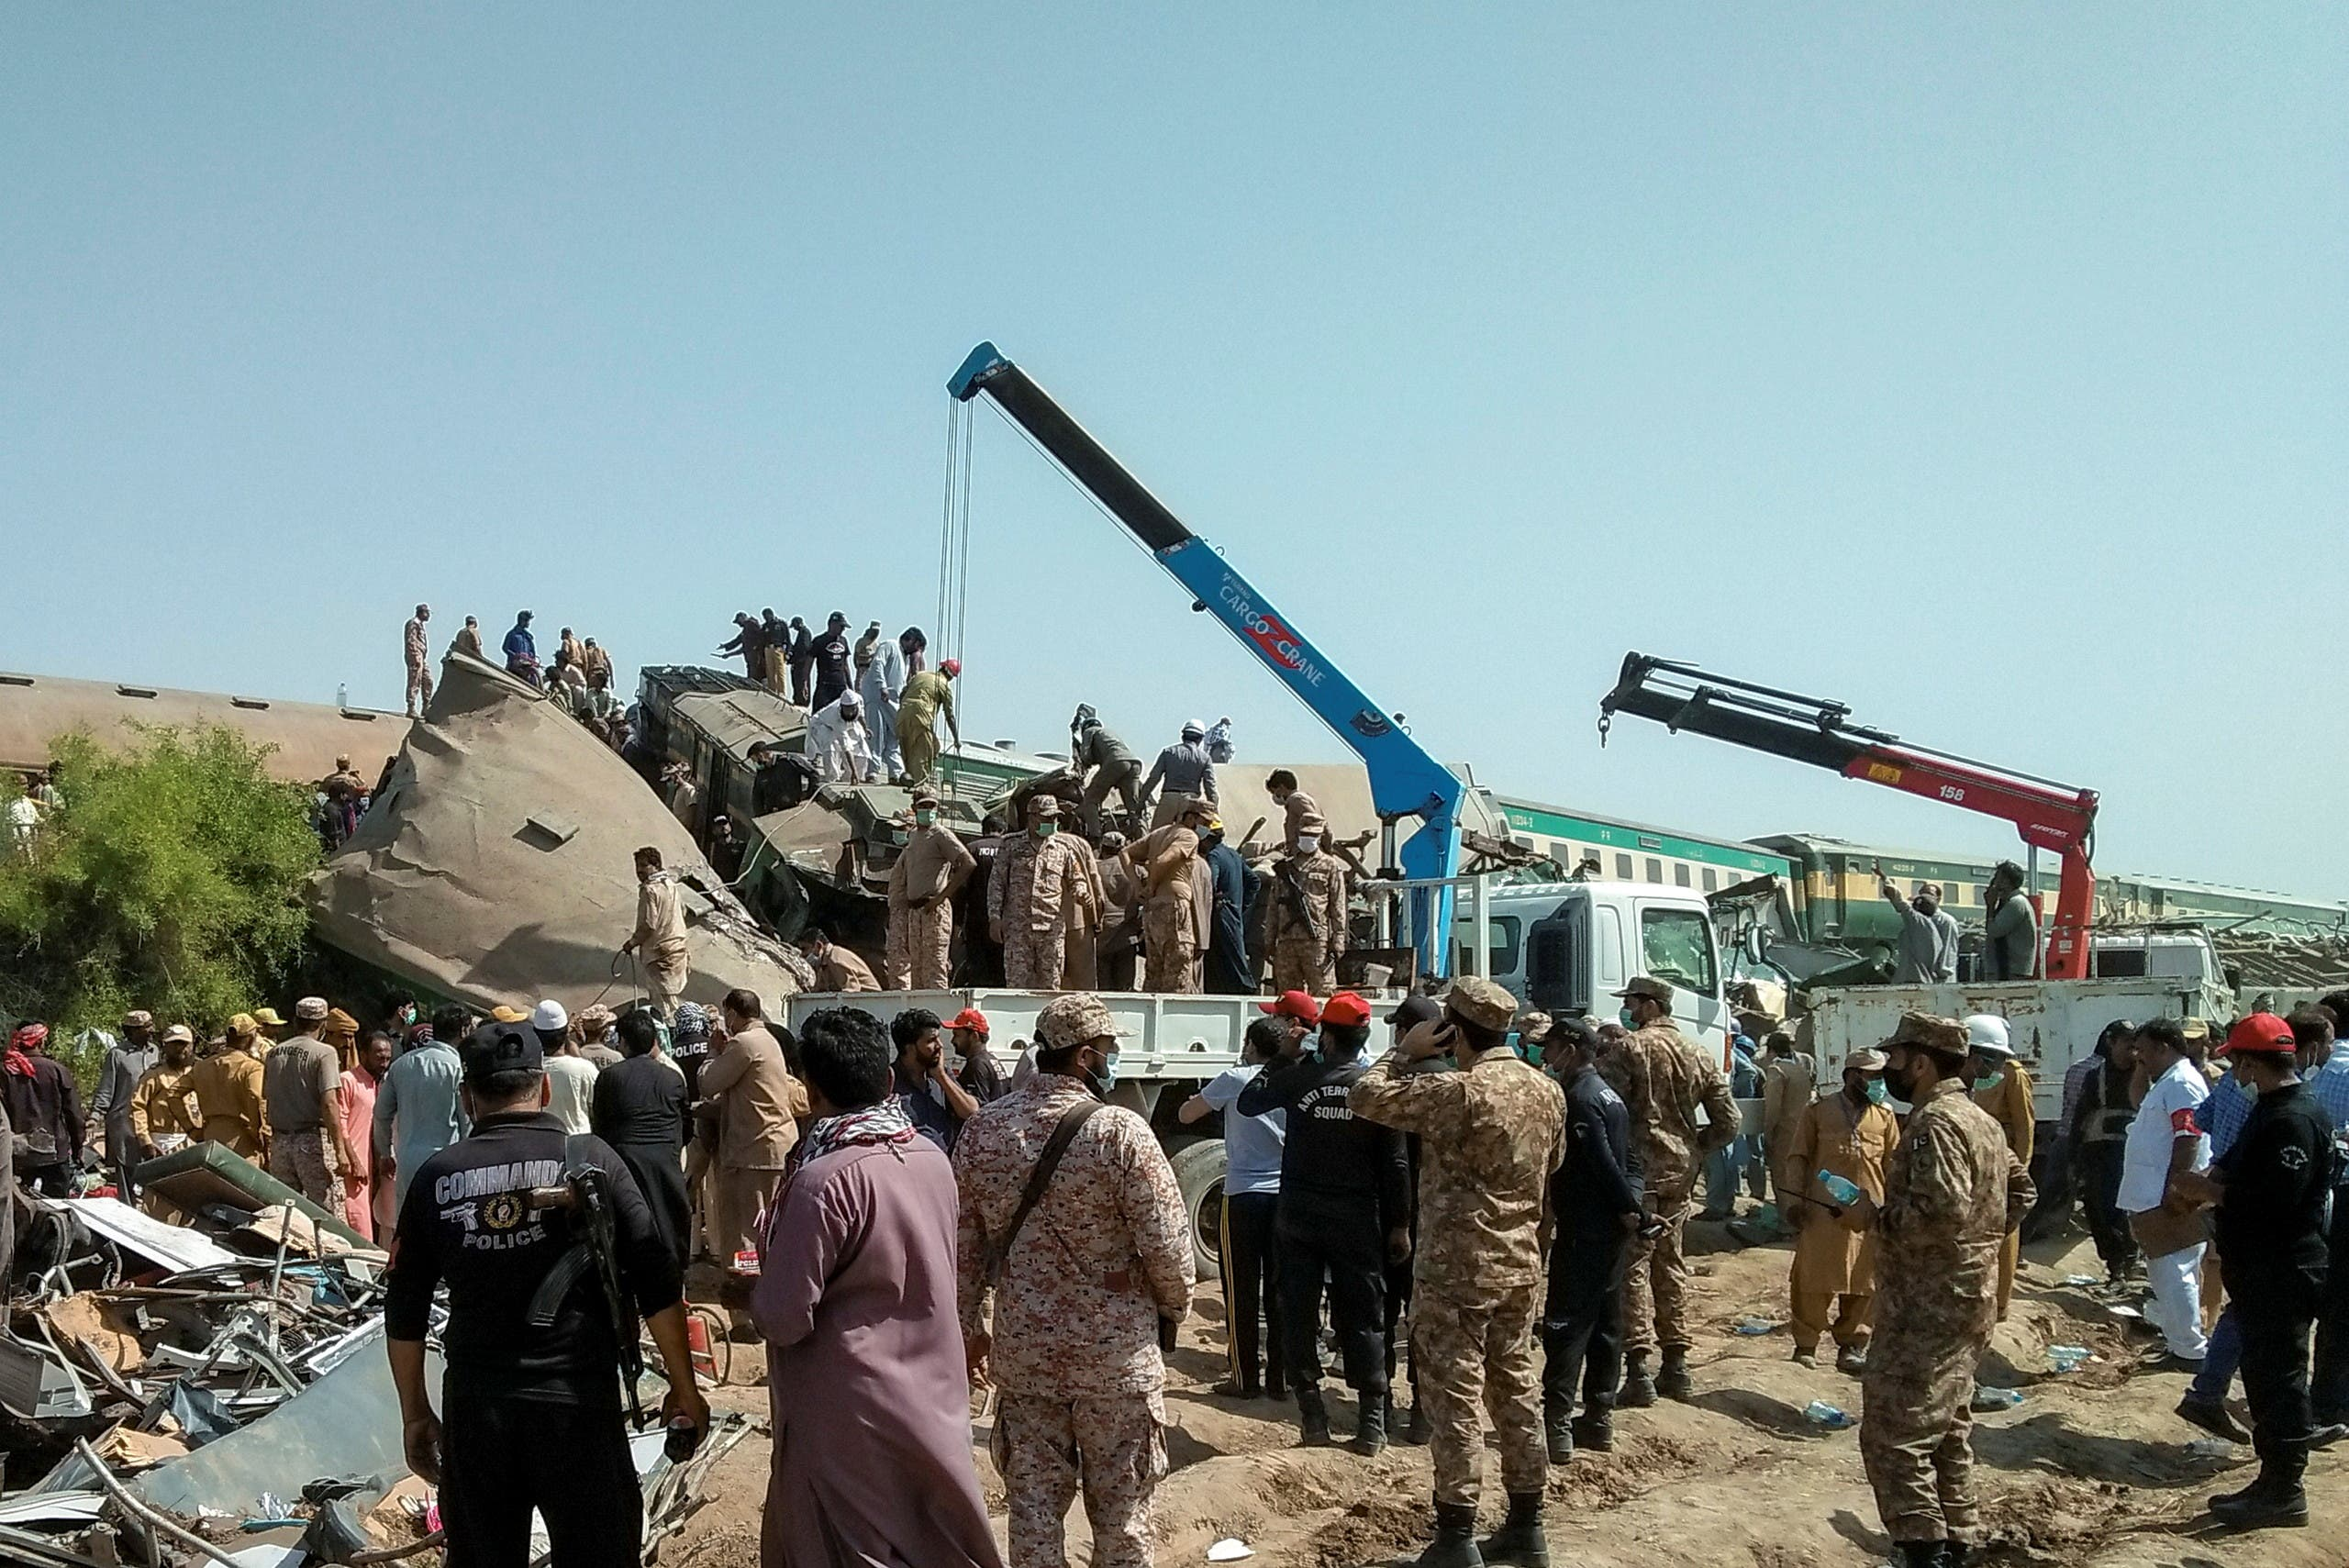 Paramilitary soldiers and rescue workers gather at the site following a collision between two trains in Ghotki, Pakistan June 7, 2021. (Reuters)